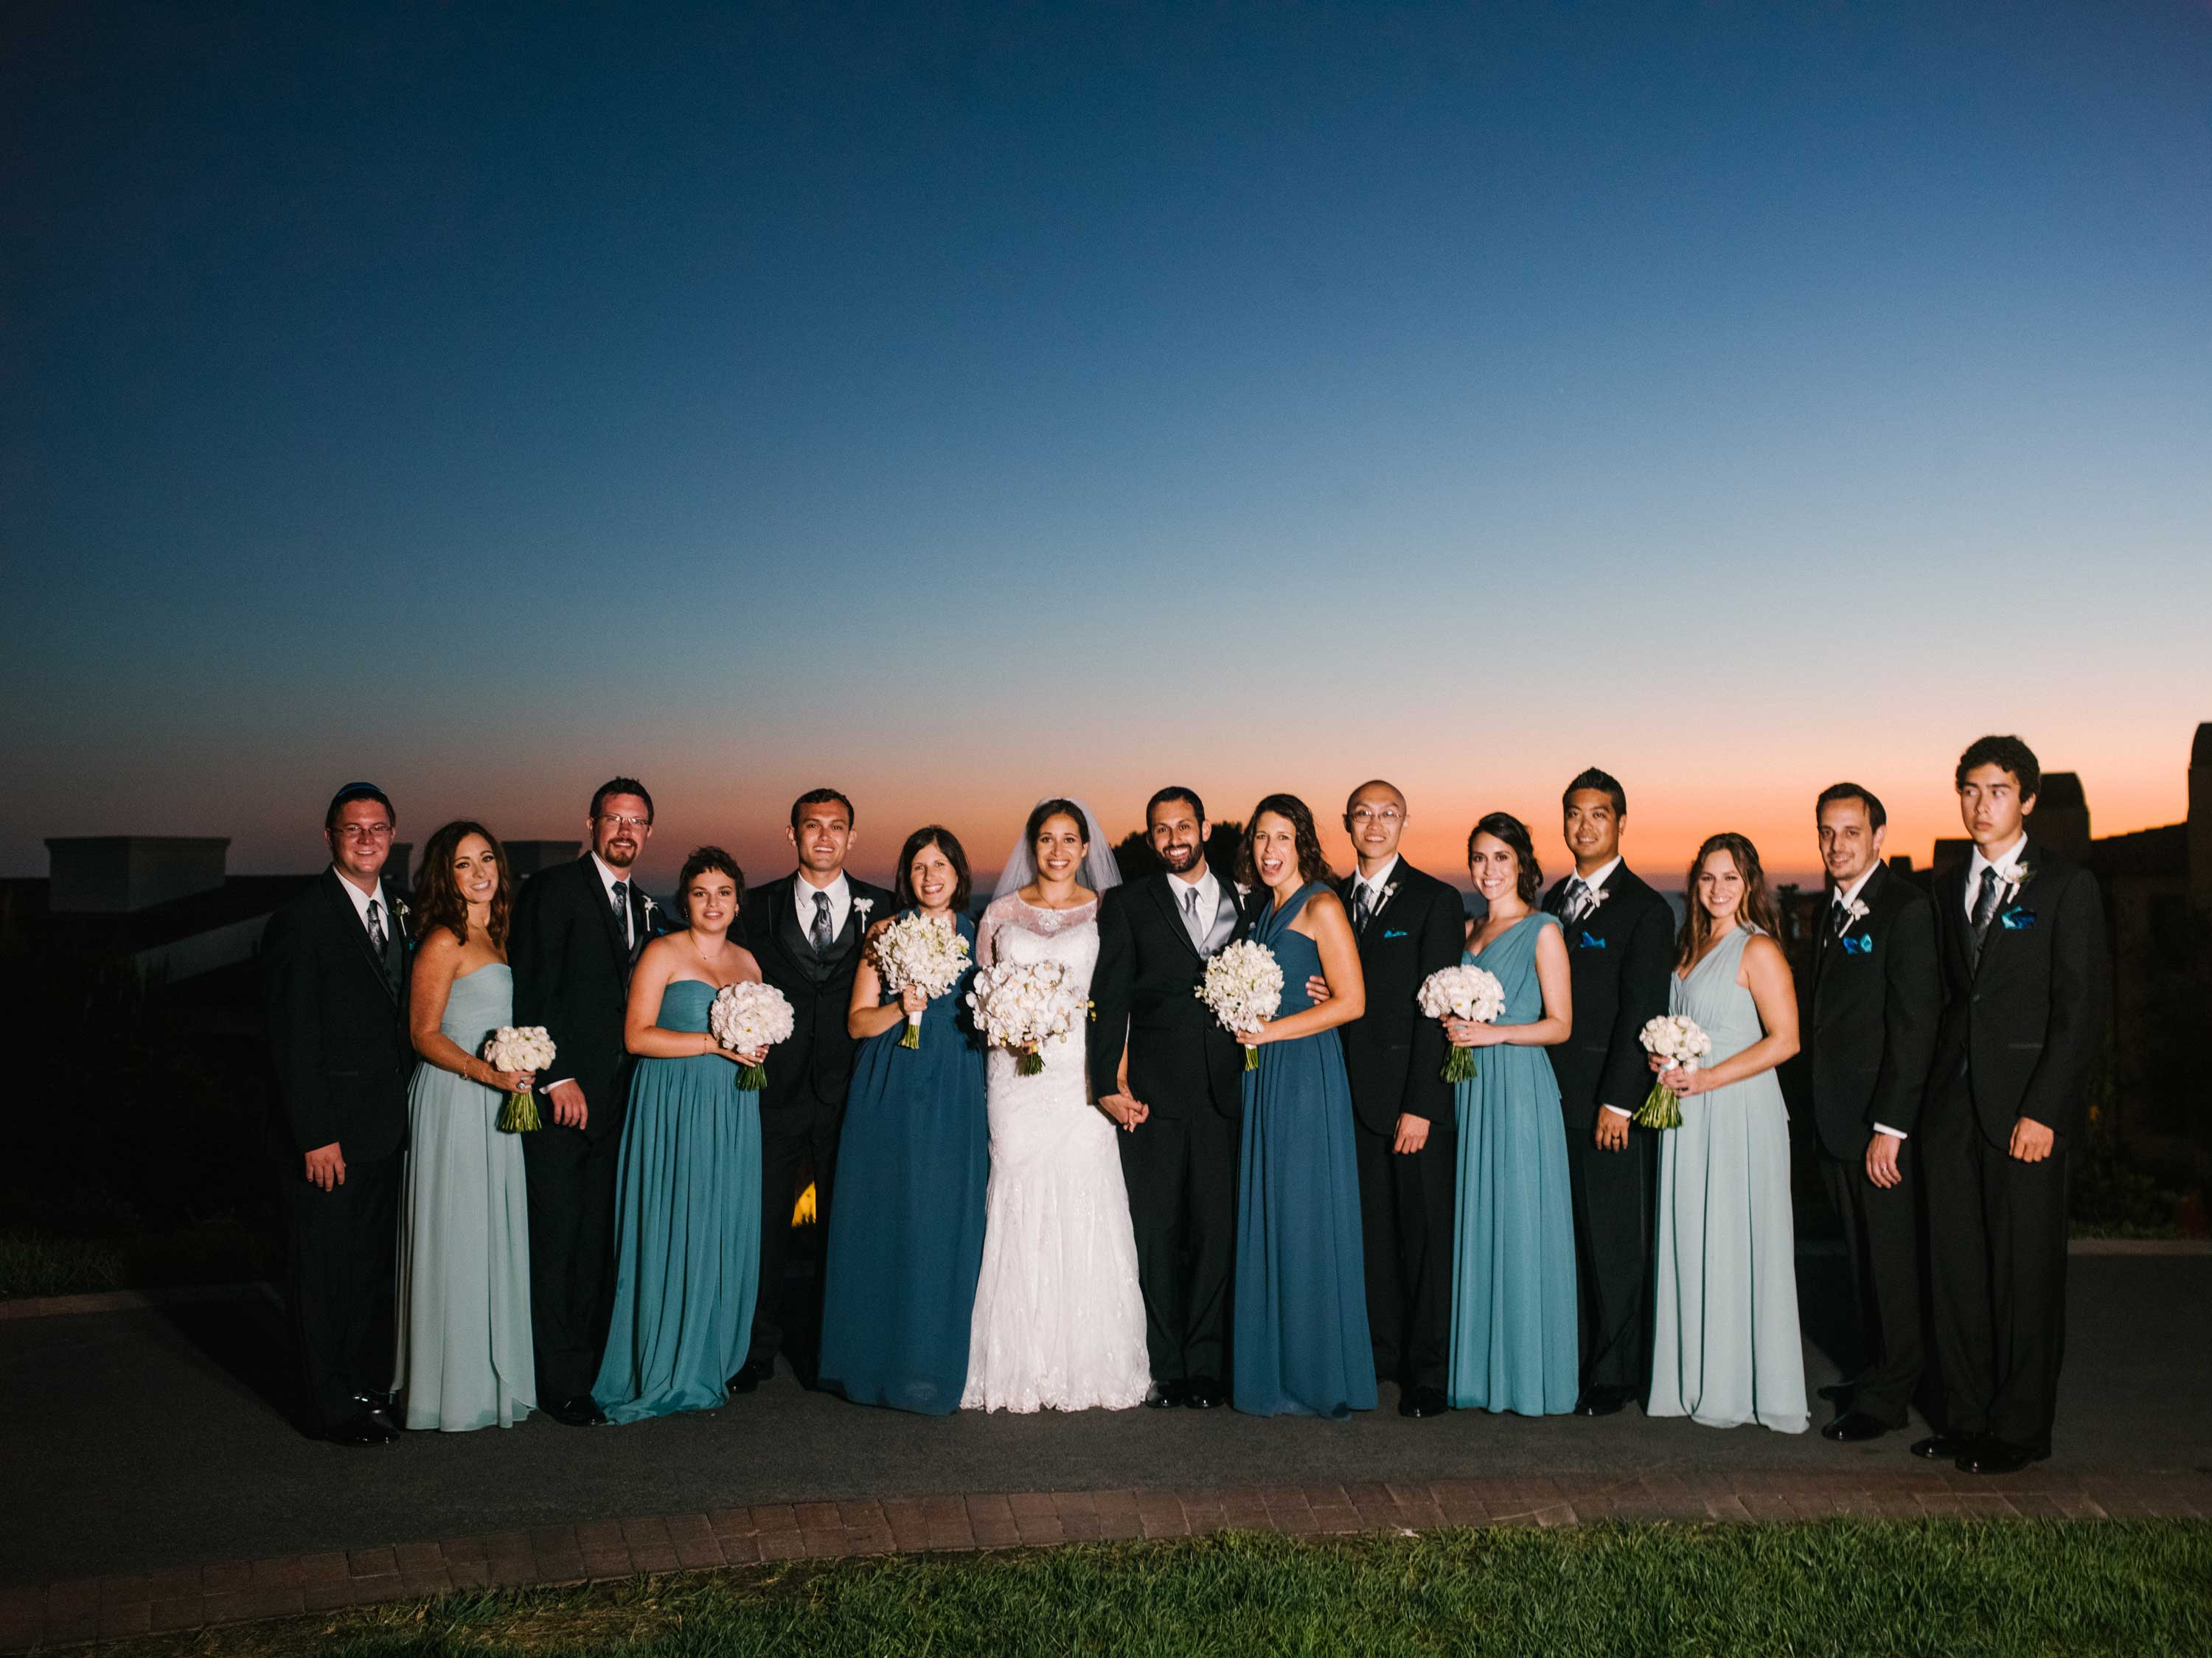 13 Picture-Perfect Poses for Your Wedding Party - Inside Weddings